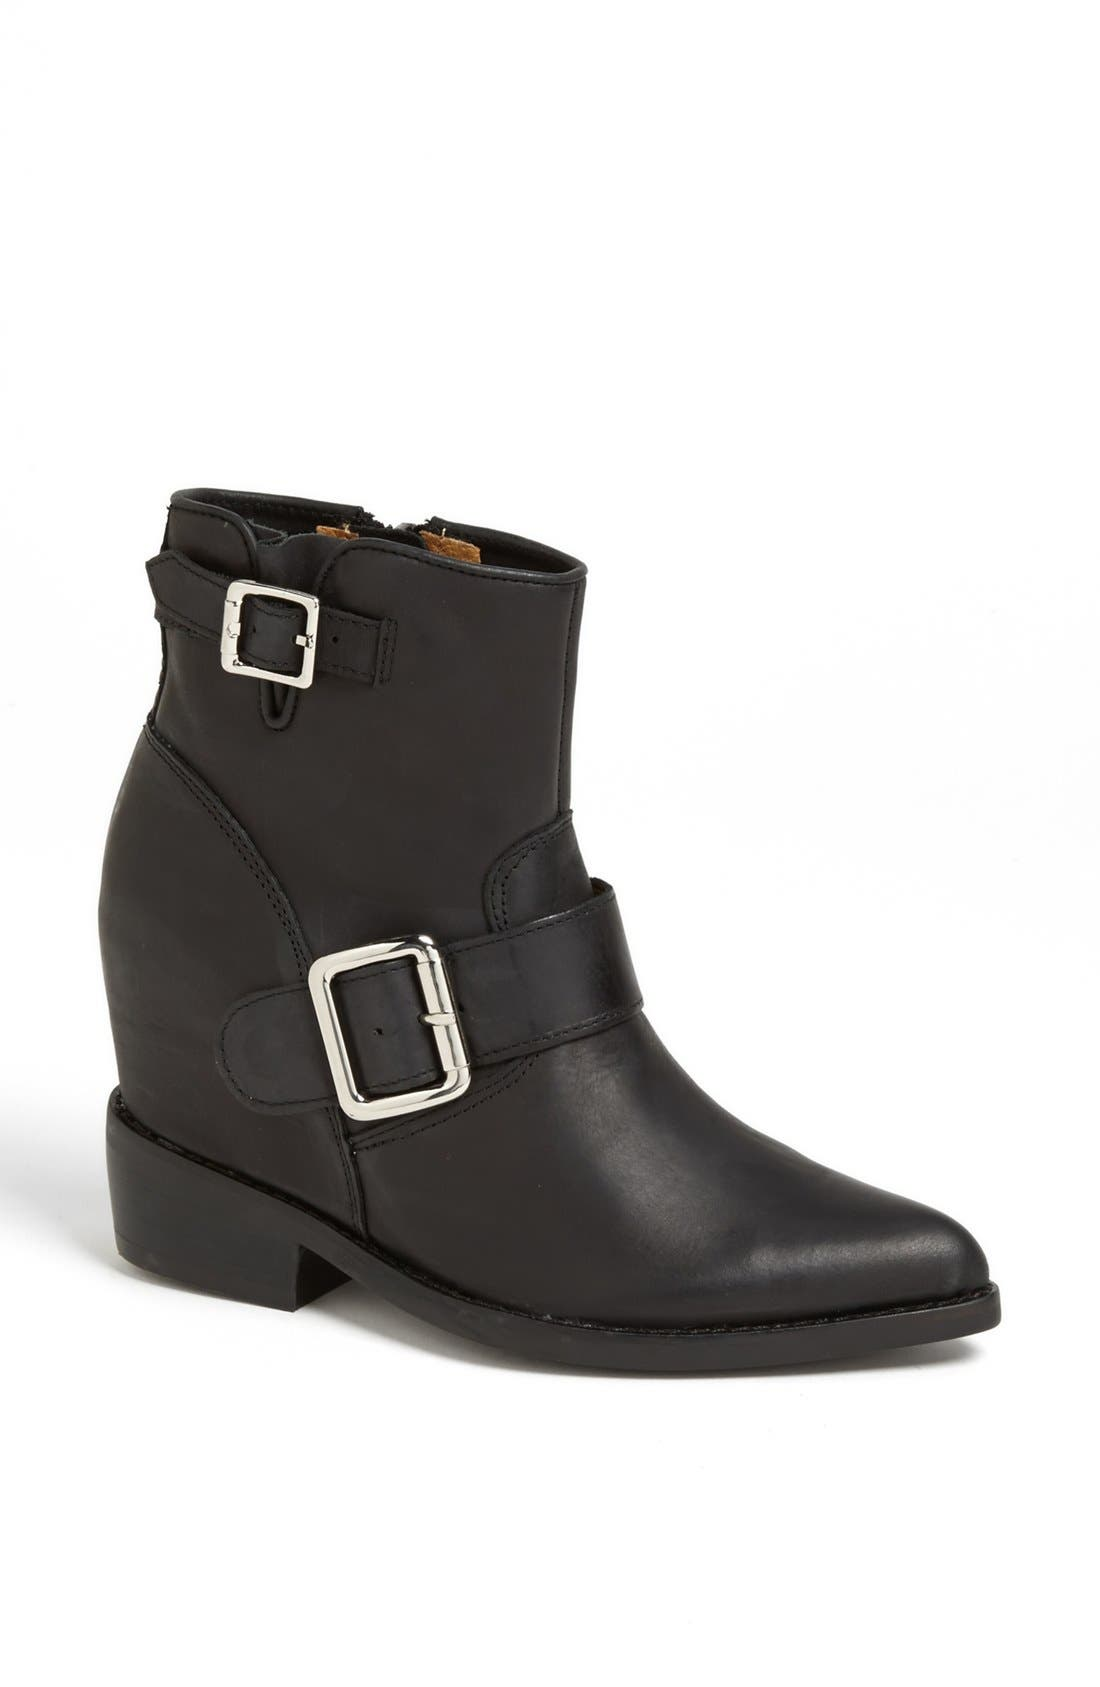 Alternate Image 1 Selected - Jeffrey Campbell 'Welda' Boot